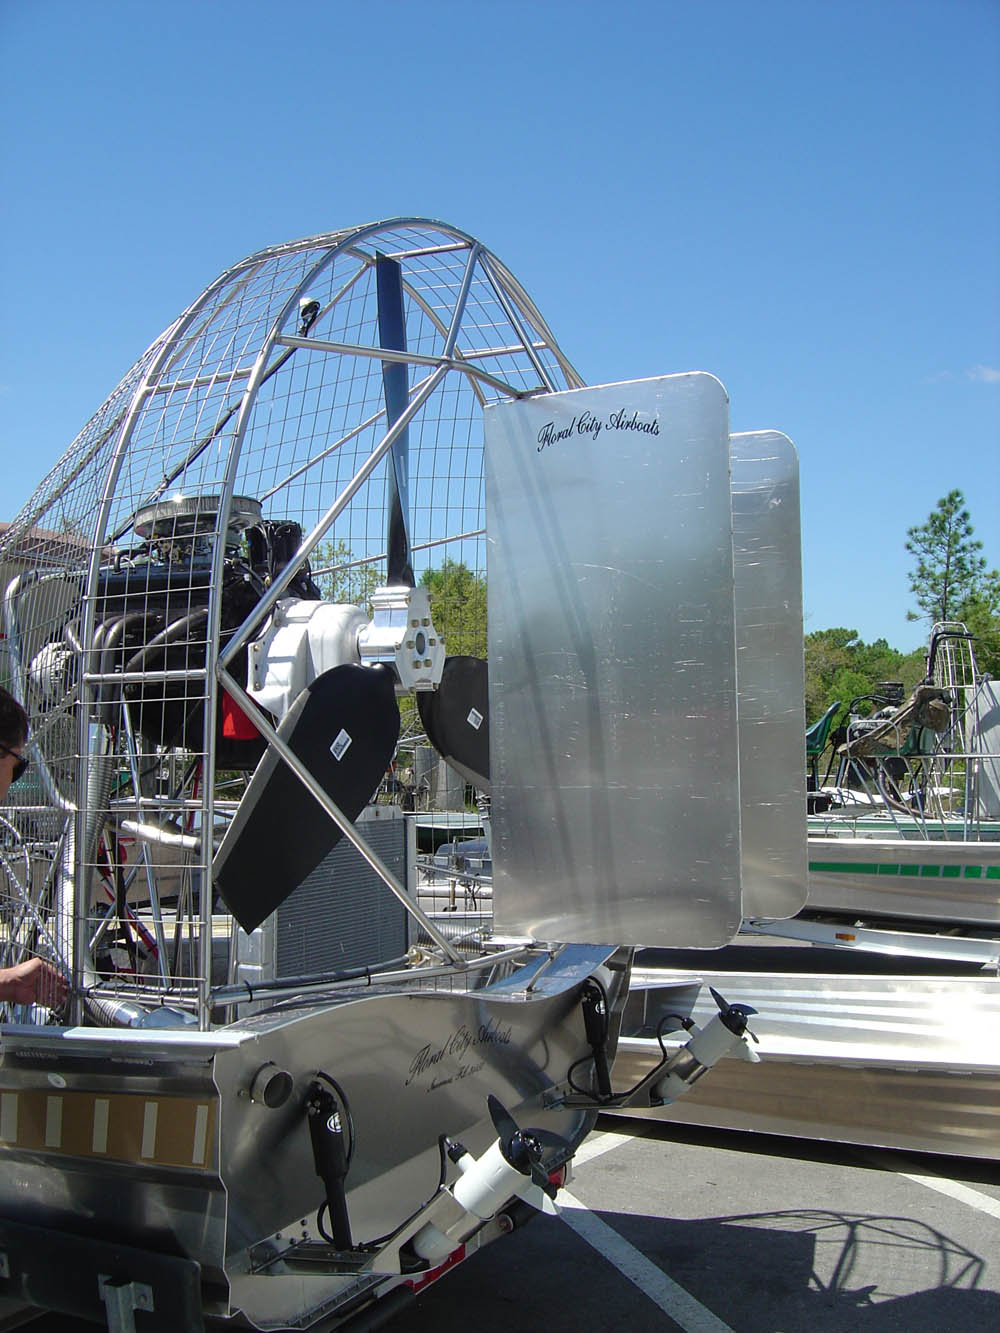 fc-airboat2004